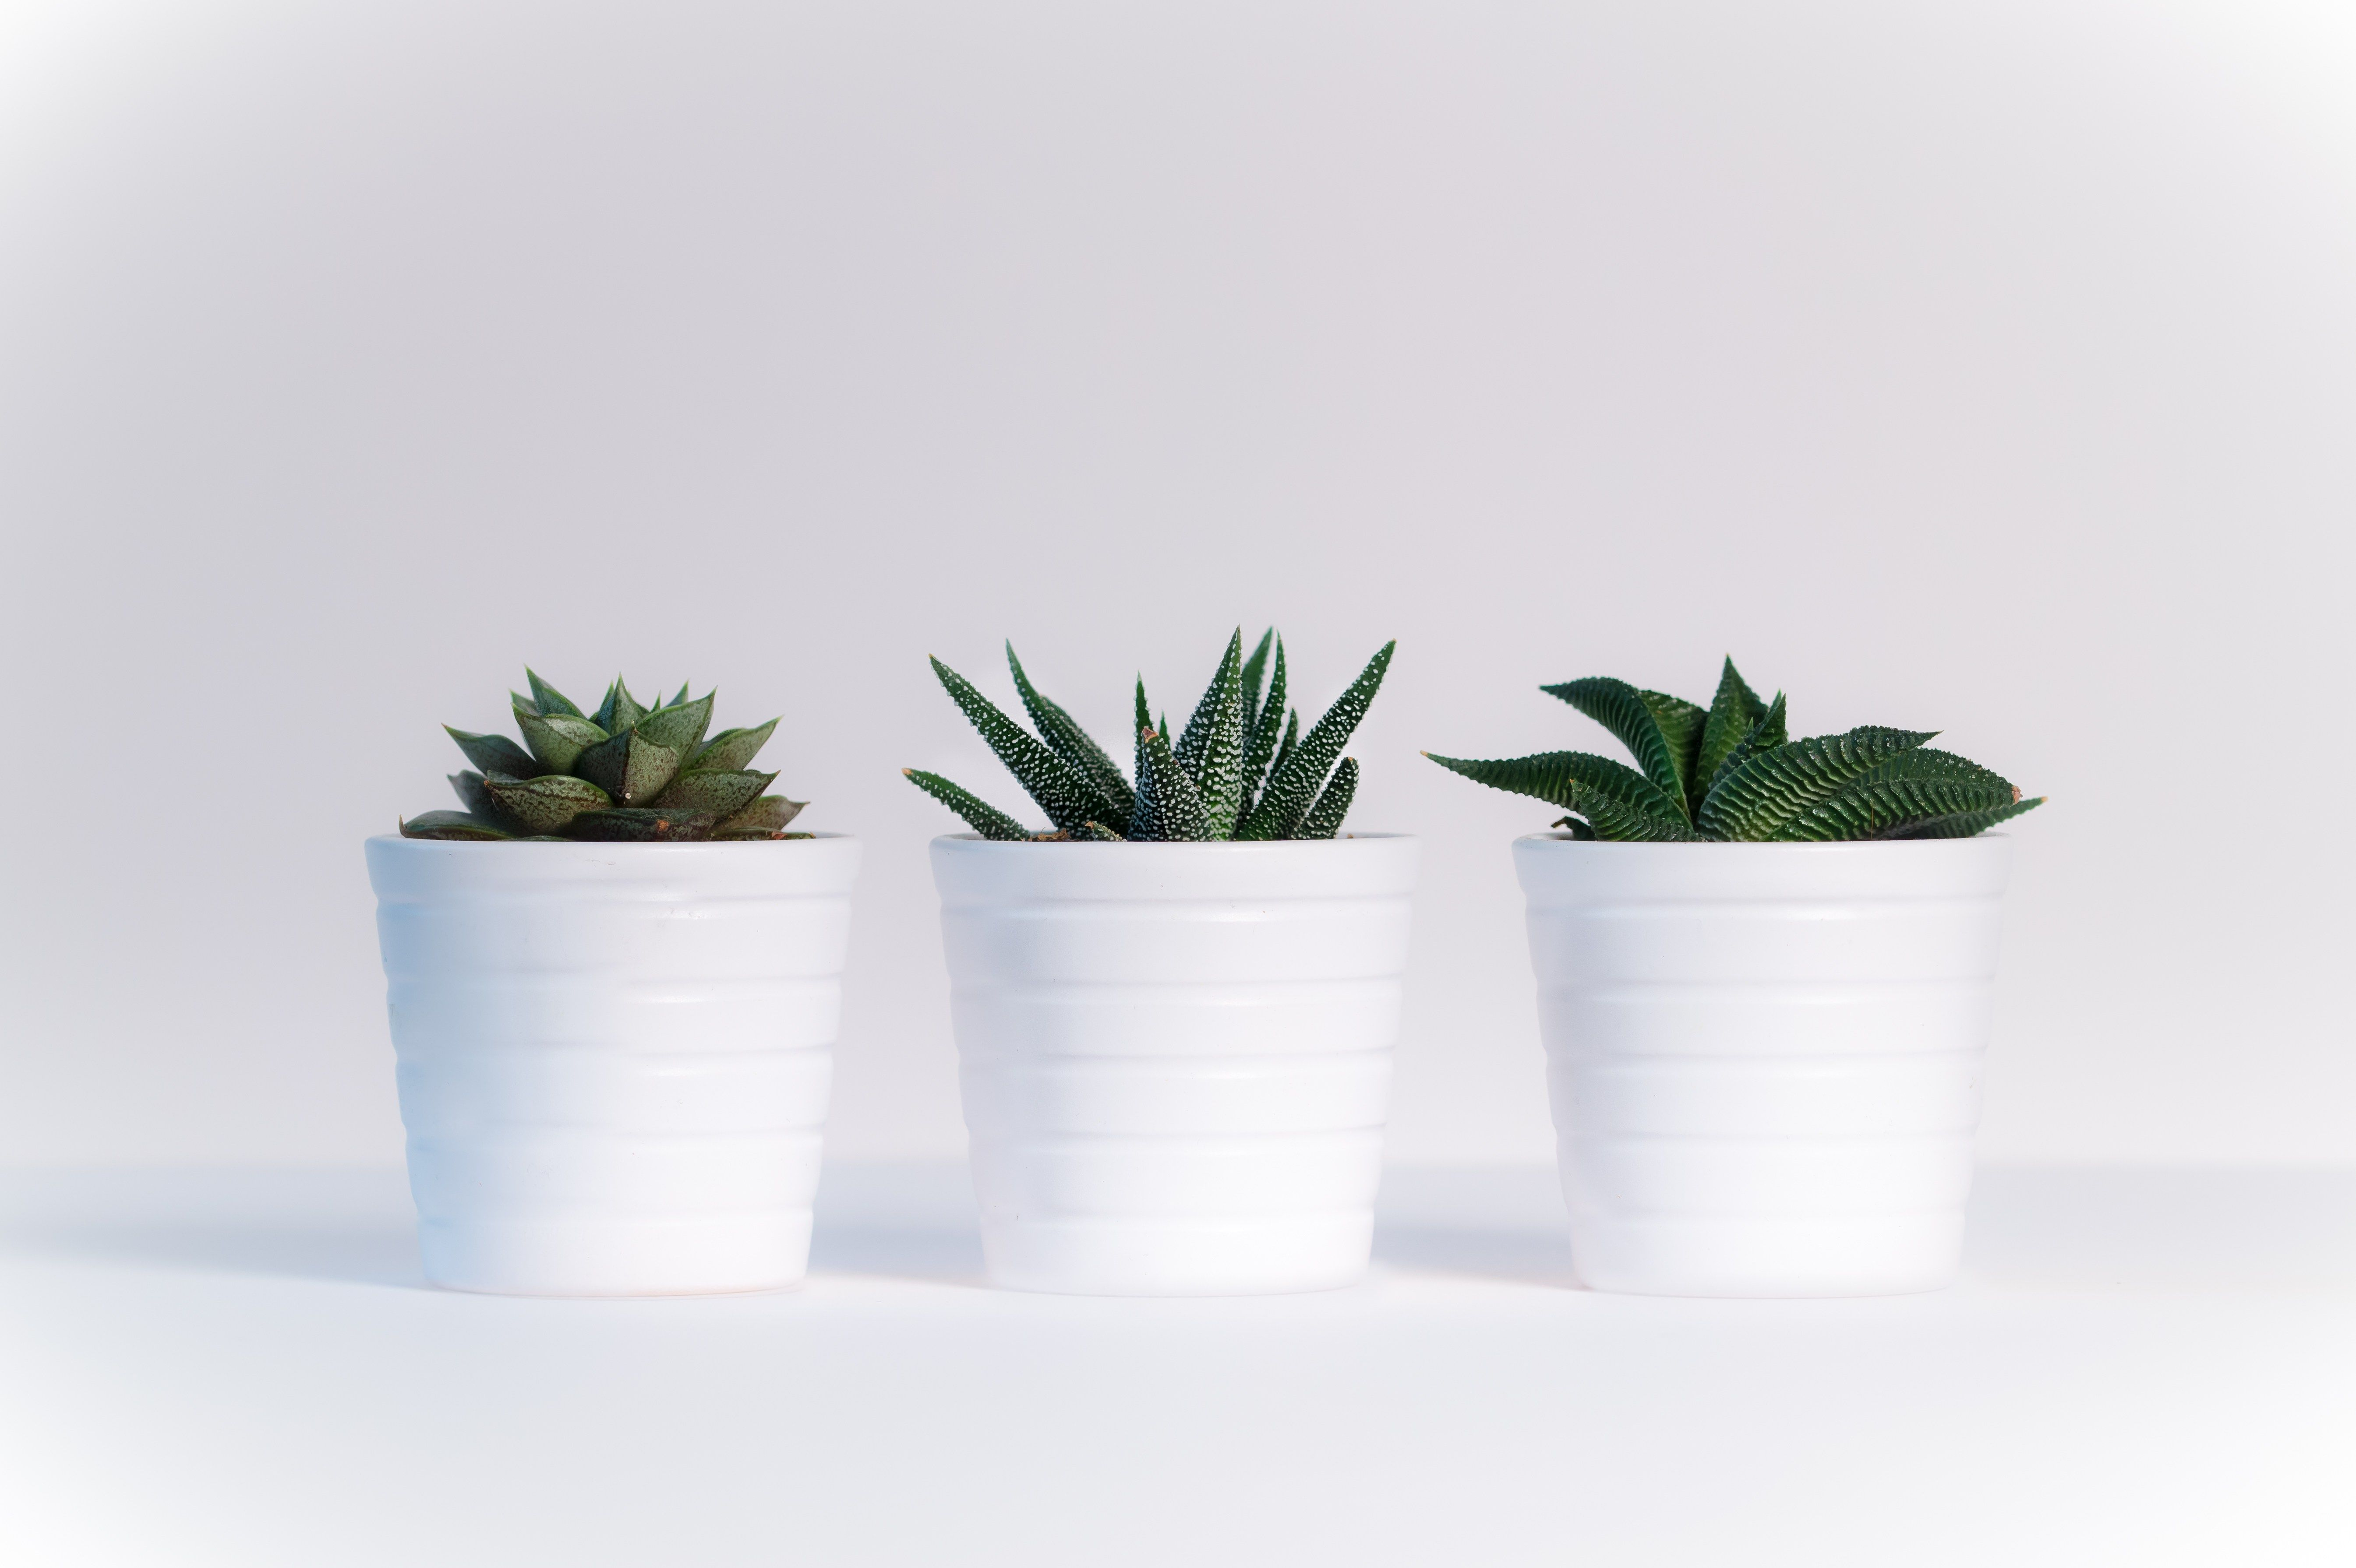 Houseplants Add Color, Life And Are Natural Air Purifiers For